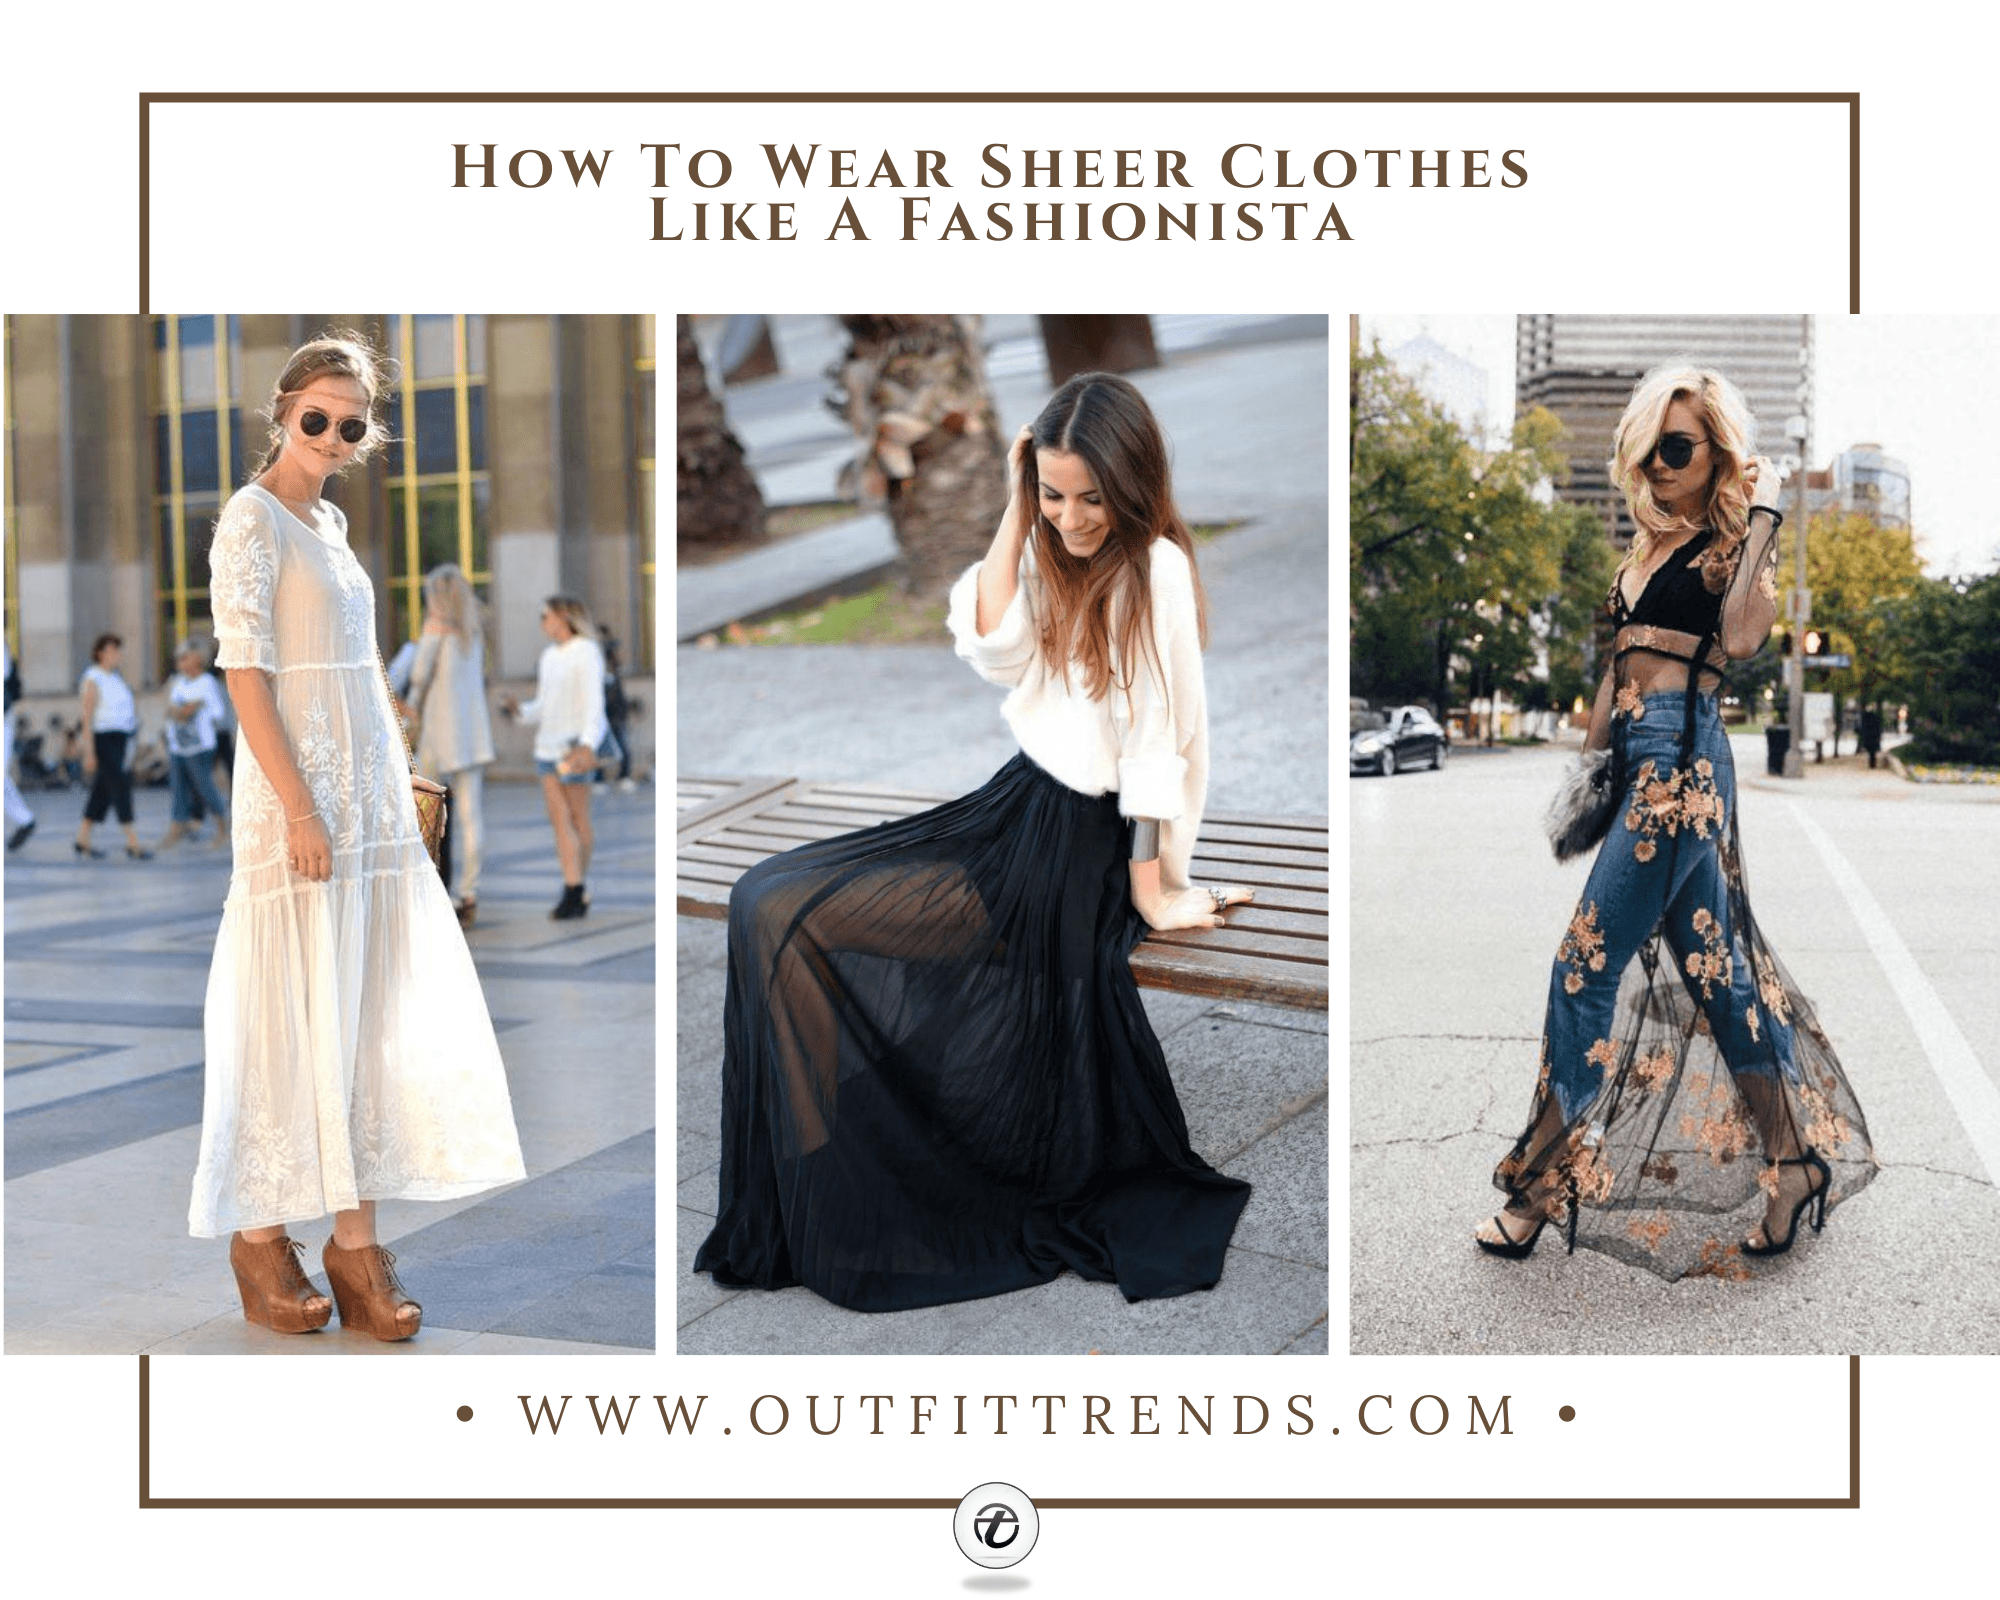 33 Ideas on How to Wear Sheer & See-Through Outfits